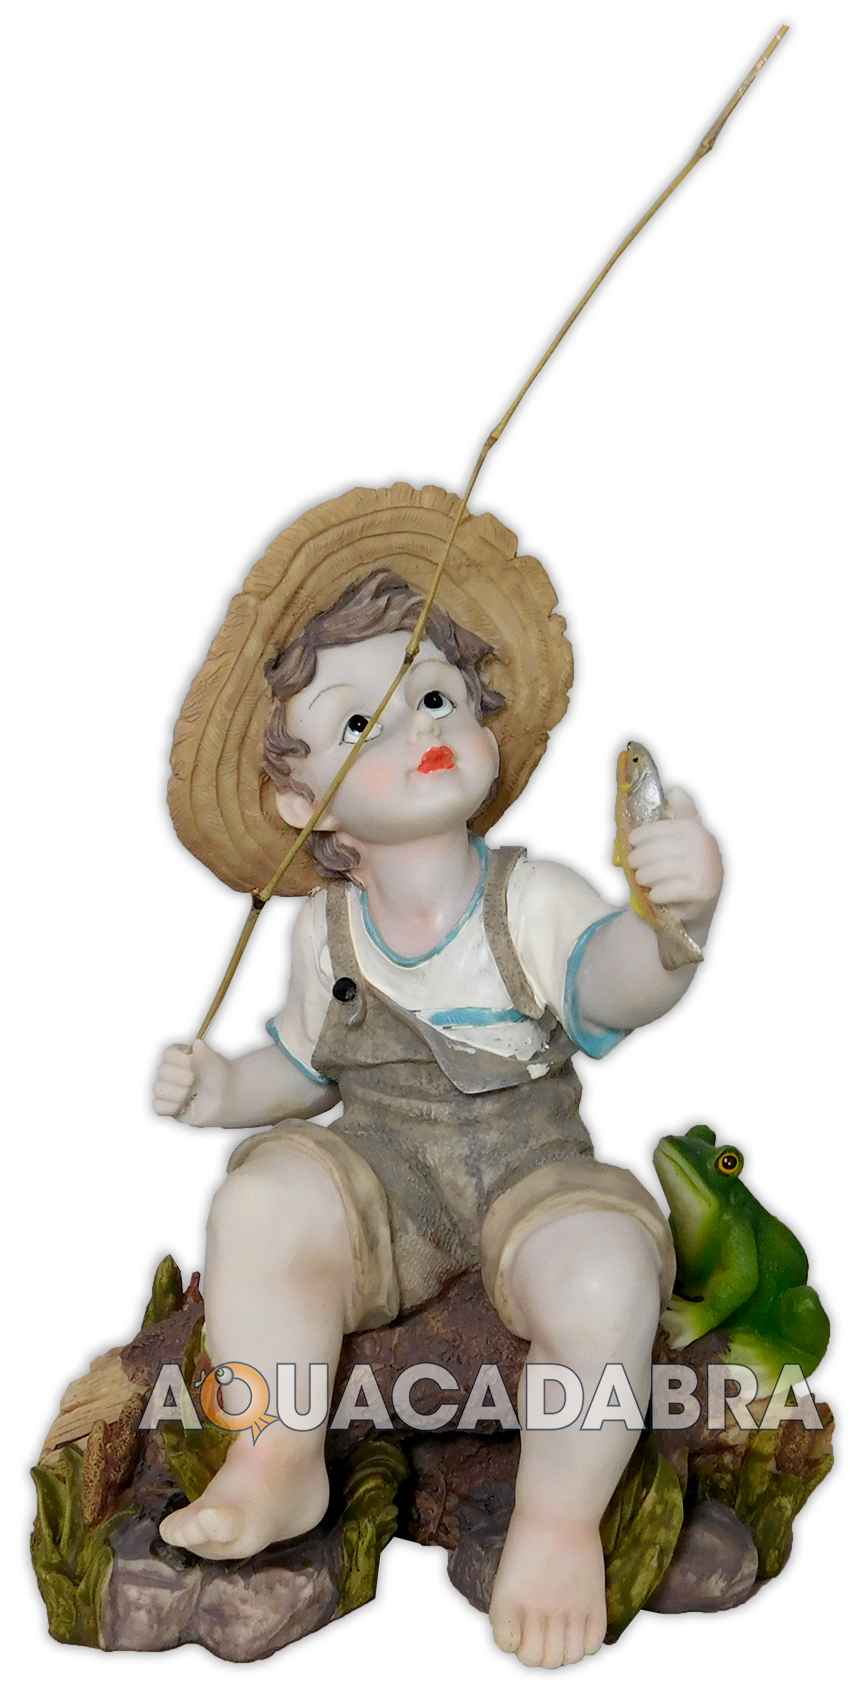 Toscano fishing boy with frog statue garden pond ornament for Fish pond ornaments